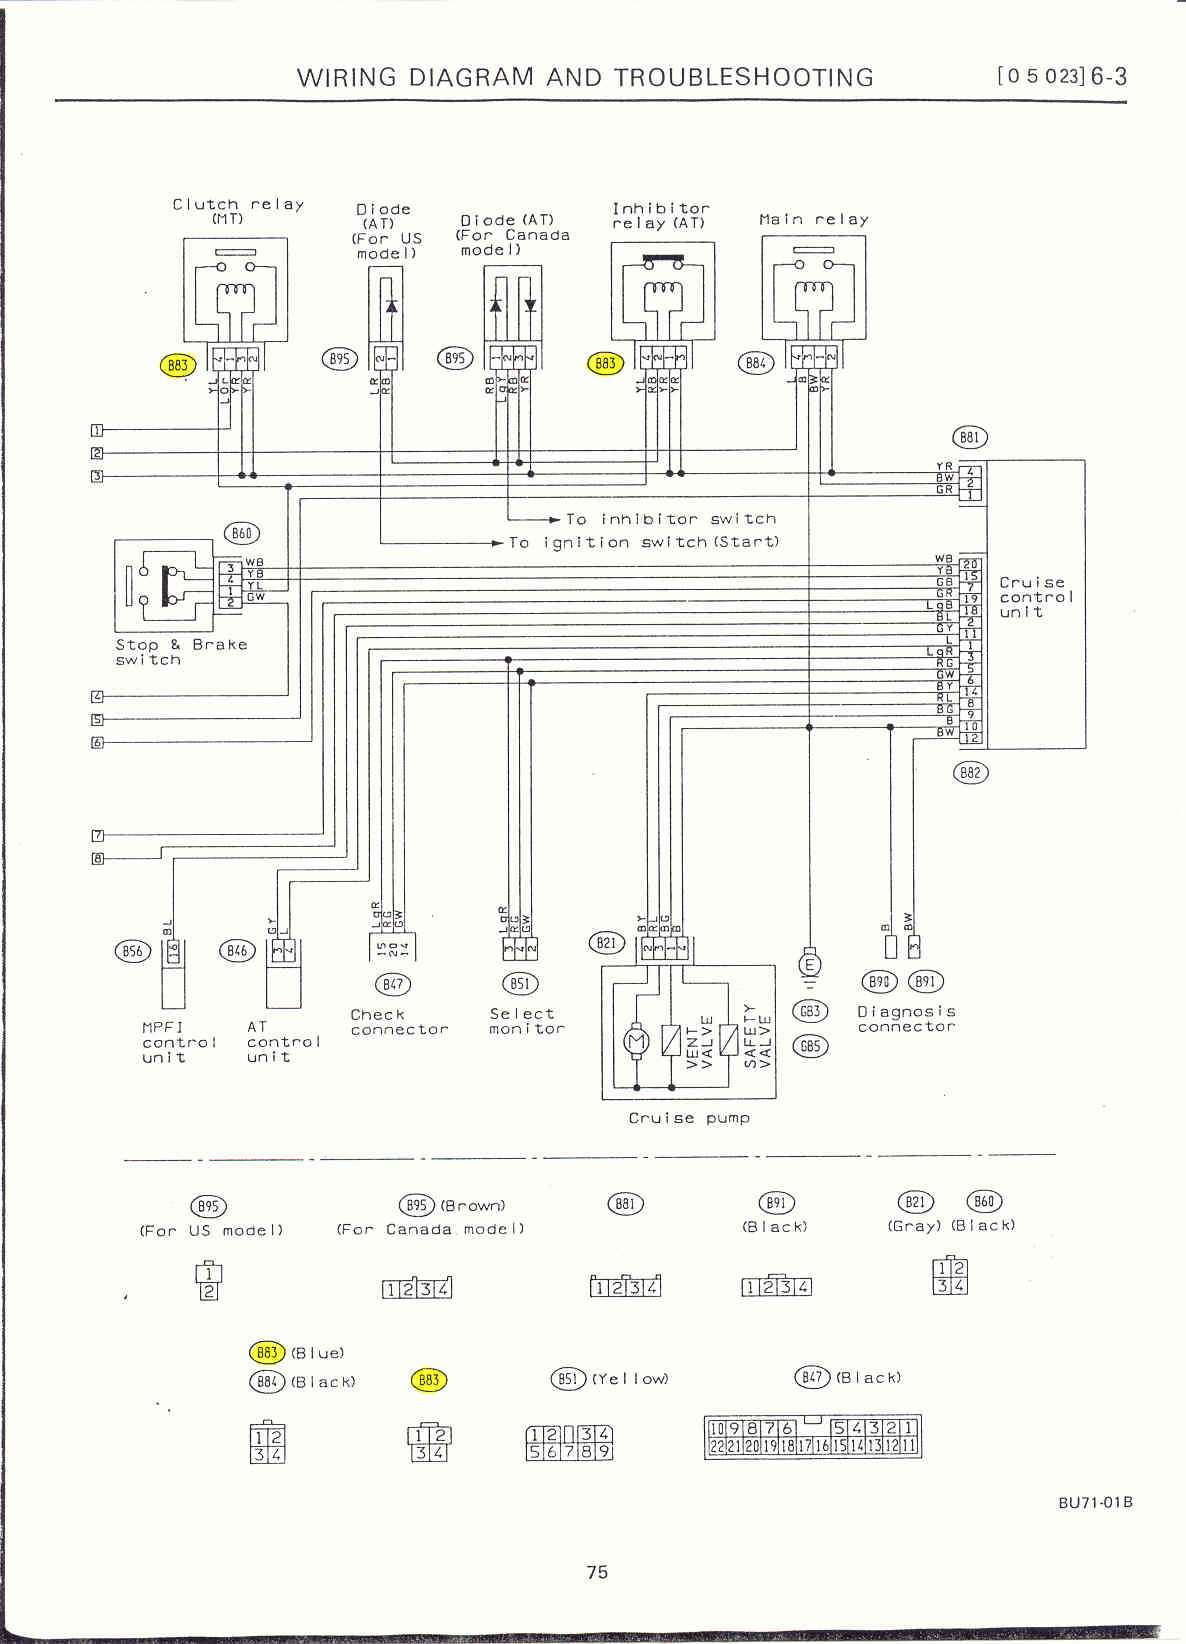 1997 subaru legacy wiring diagram Collection-1997 Subaru Legacy Wiring Diagram Best Legacycentral Bbs • View topic Power Mode Override Switch 7-o